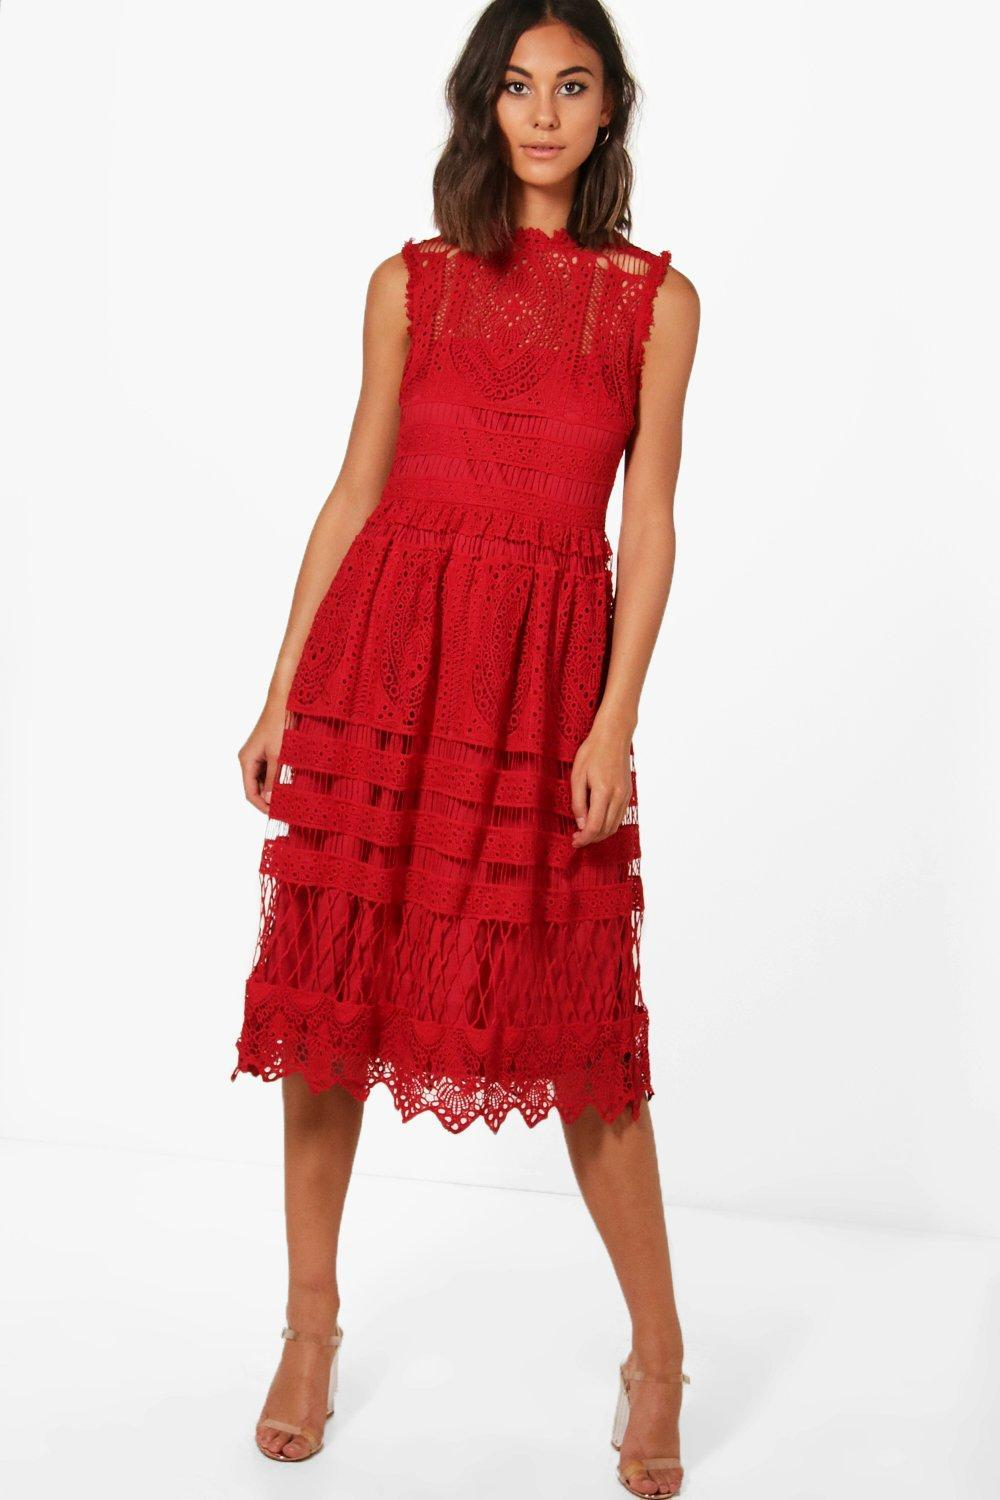 4665b92ff0cb Boohoo Boutique Lace Midi Skater Dress in Red - Lyst